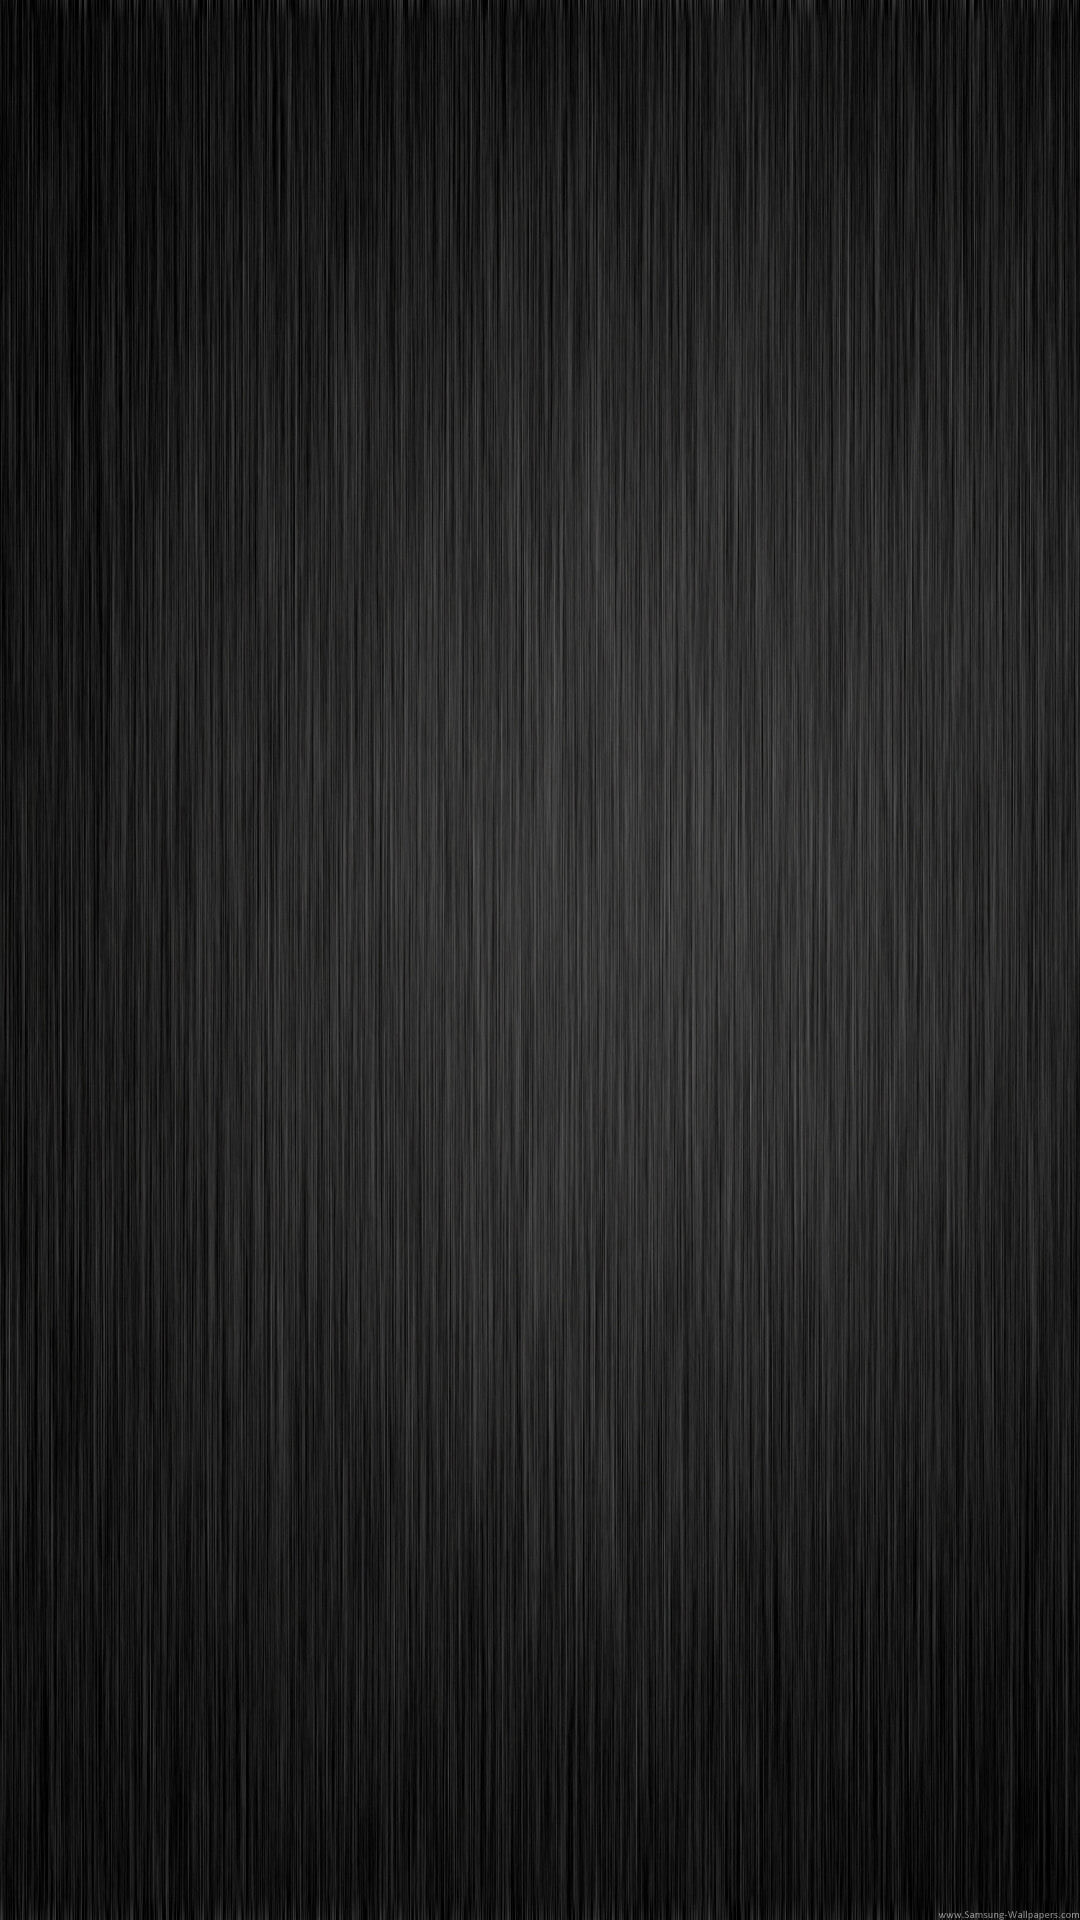 1080x1920 Black And Gray Wallpaper for Android | Backgrounds for Android